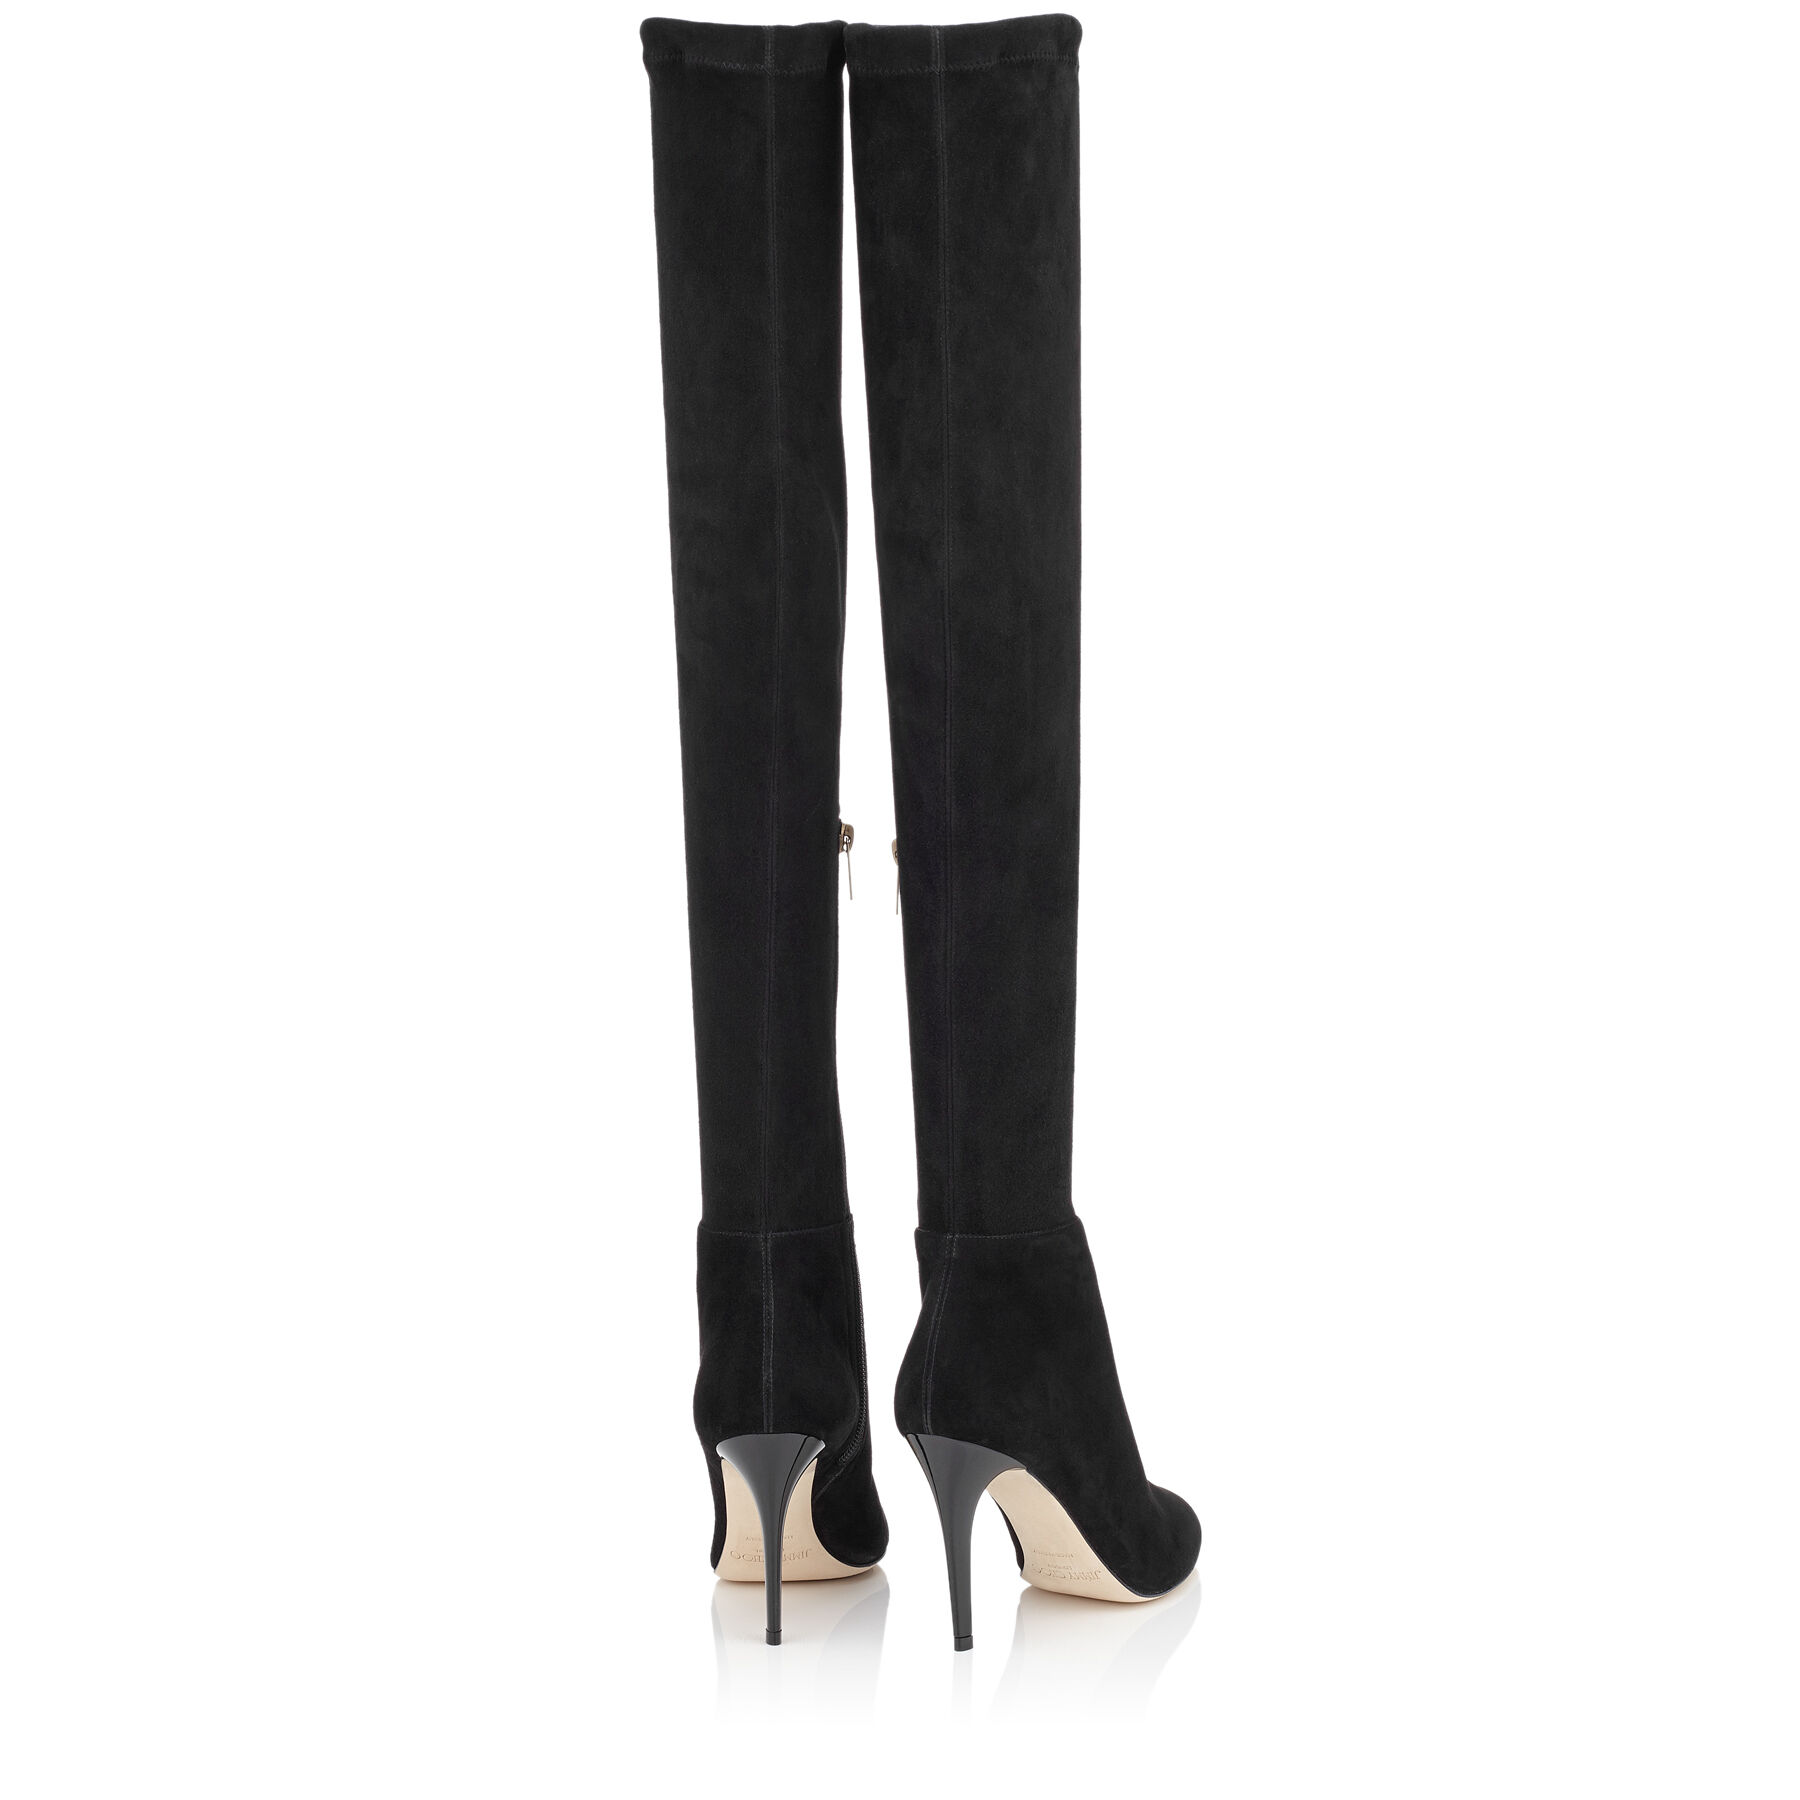 Stretch Suede Over-the-Knee Boots  TONI